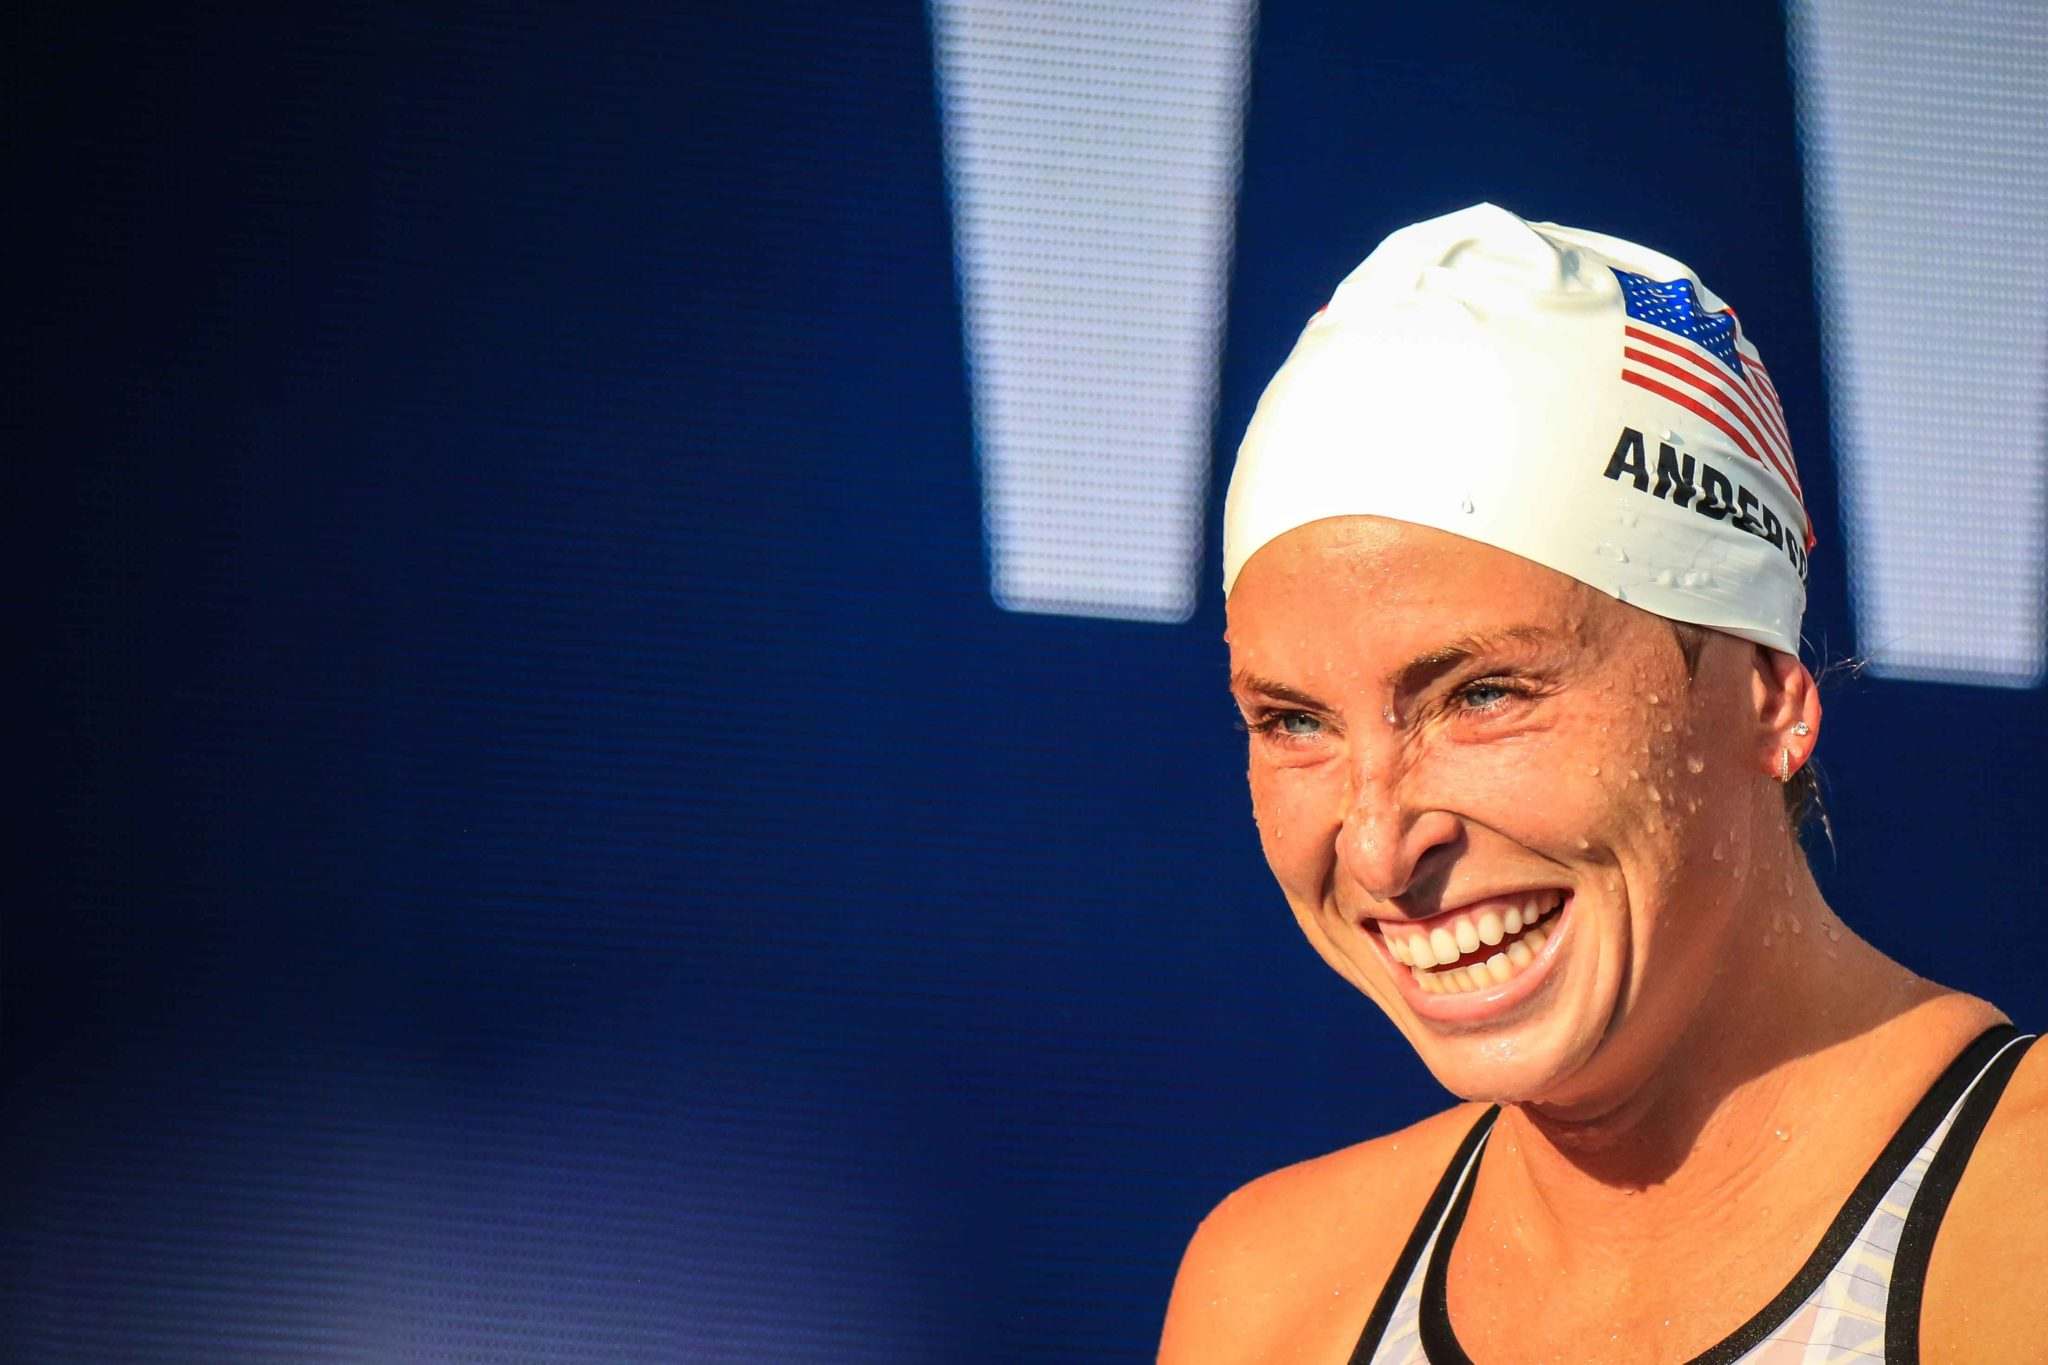 Haley Anderson and Ashley Twichell Withdraw from Inaugural Beach Games